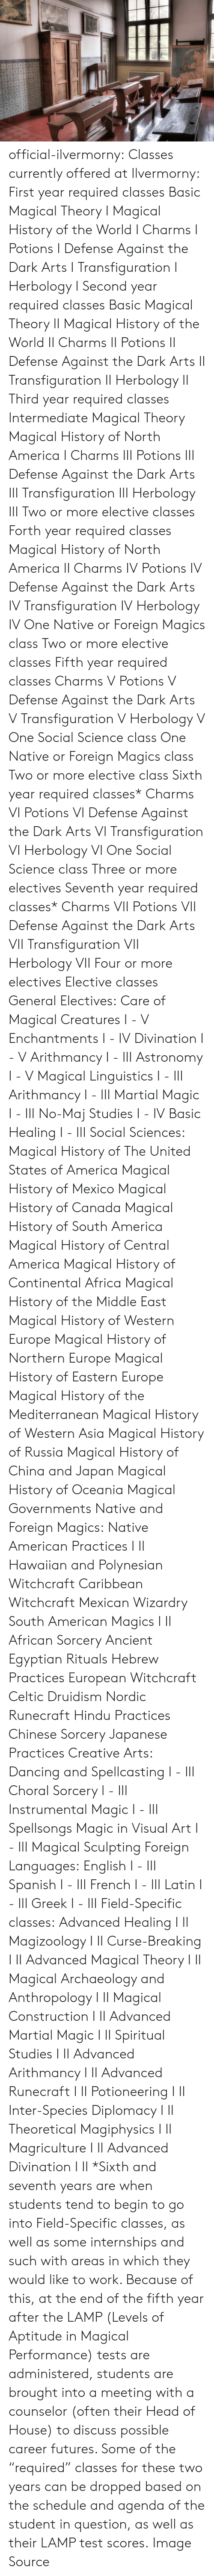 Celtic: official-ilvermorny:  Classes currently offered at Ilvermorny:  First year required classes  Basic Magical Theory I Magical History of the World I Charms I Potions I Defense Against the Dark Arts I Transfiguration I Herbology I   Second year required classes  Basic Magical Theory II Magical History of the World II Charms II Potions II Defense Against the Dark Arts II Transfiguration II Herbology II  Third year required classes  Intermediate Magical Theory Magical History of North America I Charms III Potions III Defense Against the Dark Arts III Transfiguration III Herbology III Two or more elective classes  Forth year required classes  Magical History of North America II Charms IV Potions IV Defense Against the Dark Arts IV Transfiguration IV Herbology IV One Native or Foreign Magics class Two or more elective classes  Fifth year required classes  Charms V Potions V Defense Against the Dark Arts V Transfiguration V Herbology V One Social Science class One Native or Foreign Magics class Two or more elective class  Sixth year required classes*  Charms VI Potions VI Defense Against the Dark Arts VI Transfiguration VI Herbology VI One Social Science class Three or more electives  Seventh year required classes*  Charms VII Potions VII Defense Against the Dark Arts VII Transfiguration VII Herbology VII Four or more electives  Elective classes  General Electives:  Care of Magical Creatures I - V Enchantments I - IV Divination I - V Arithmancy I - III Astronomy I - V Magical Linguistics I - III Arithmancy I - III Martial Magic I - III No-Maj Studies I - IV Basic Healing I - III  Social Sciences:  Magical History of The United States of America Magical History of Mexico Magical History of Canada Magical History of South America Magical History of Central America Magical History of Continental Africa Magical History of the Middle East Magical History of Western Europe Magical History of Northern Europe Magical History of Eastern Europe Magical History of the Mediterr